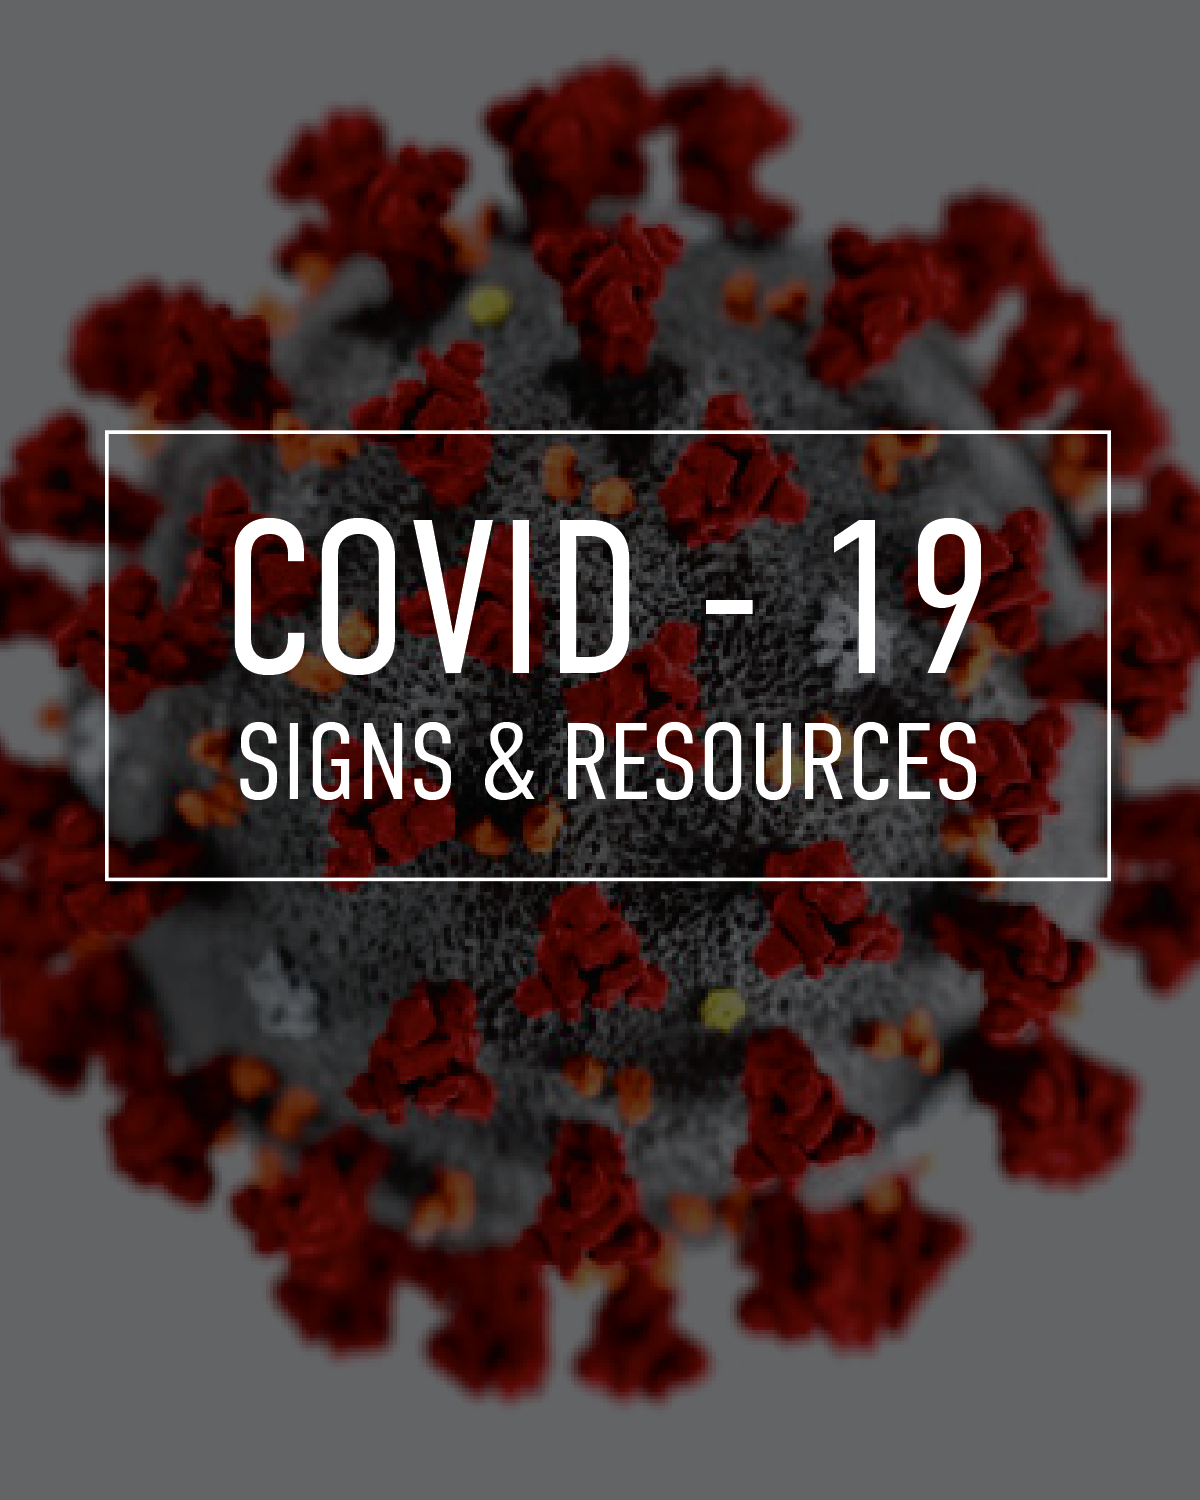 Covid 19 | Signs & Resources